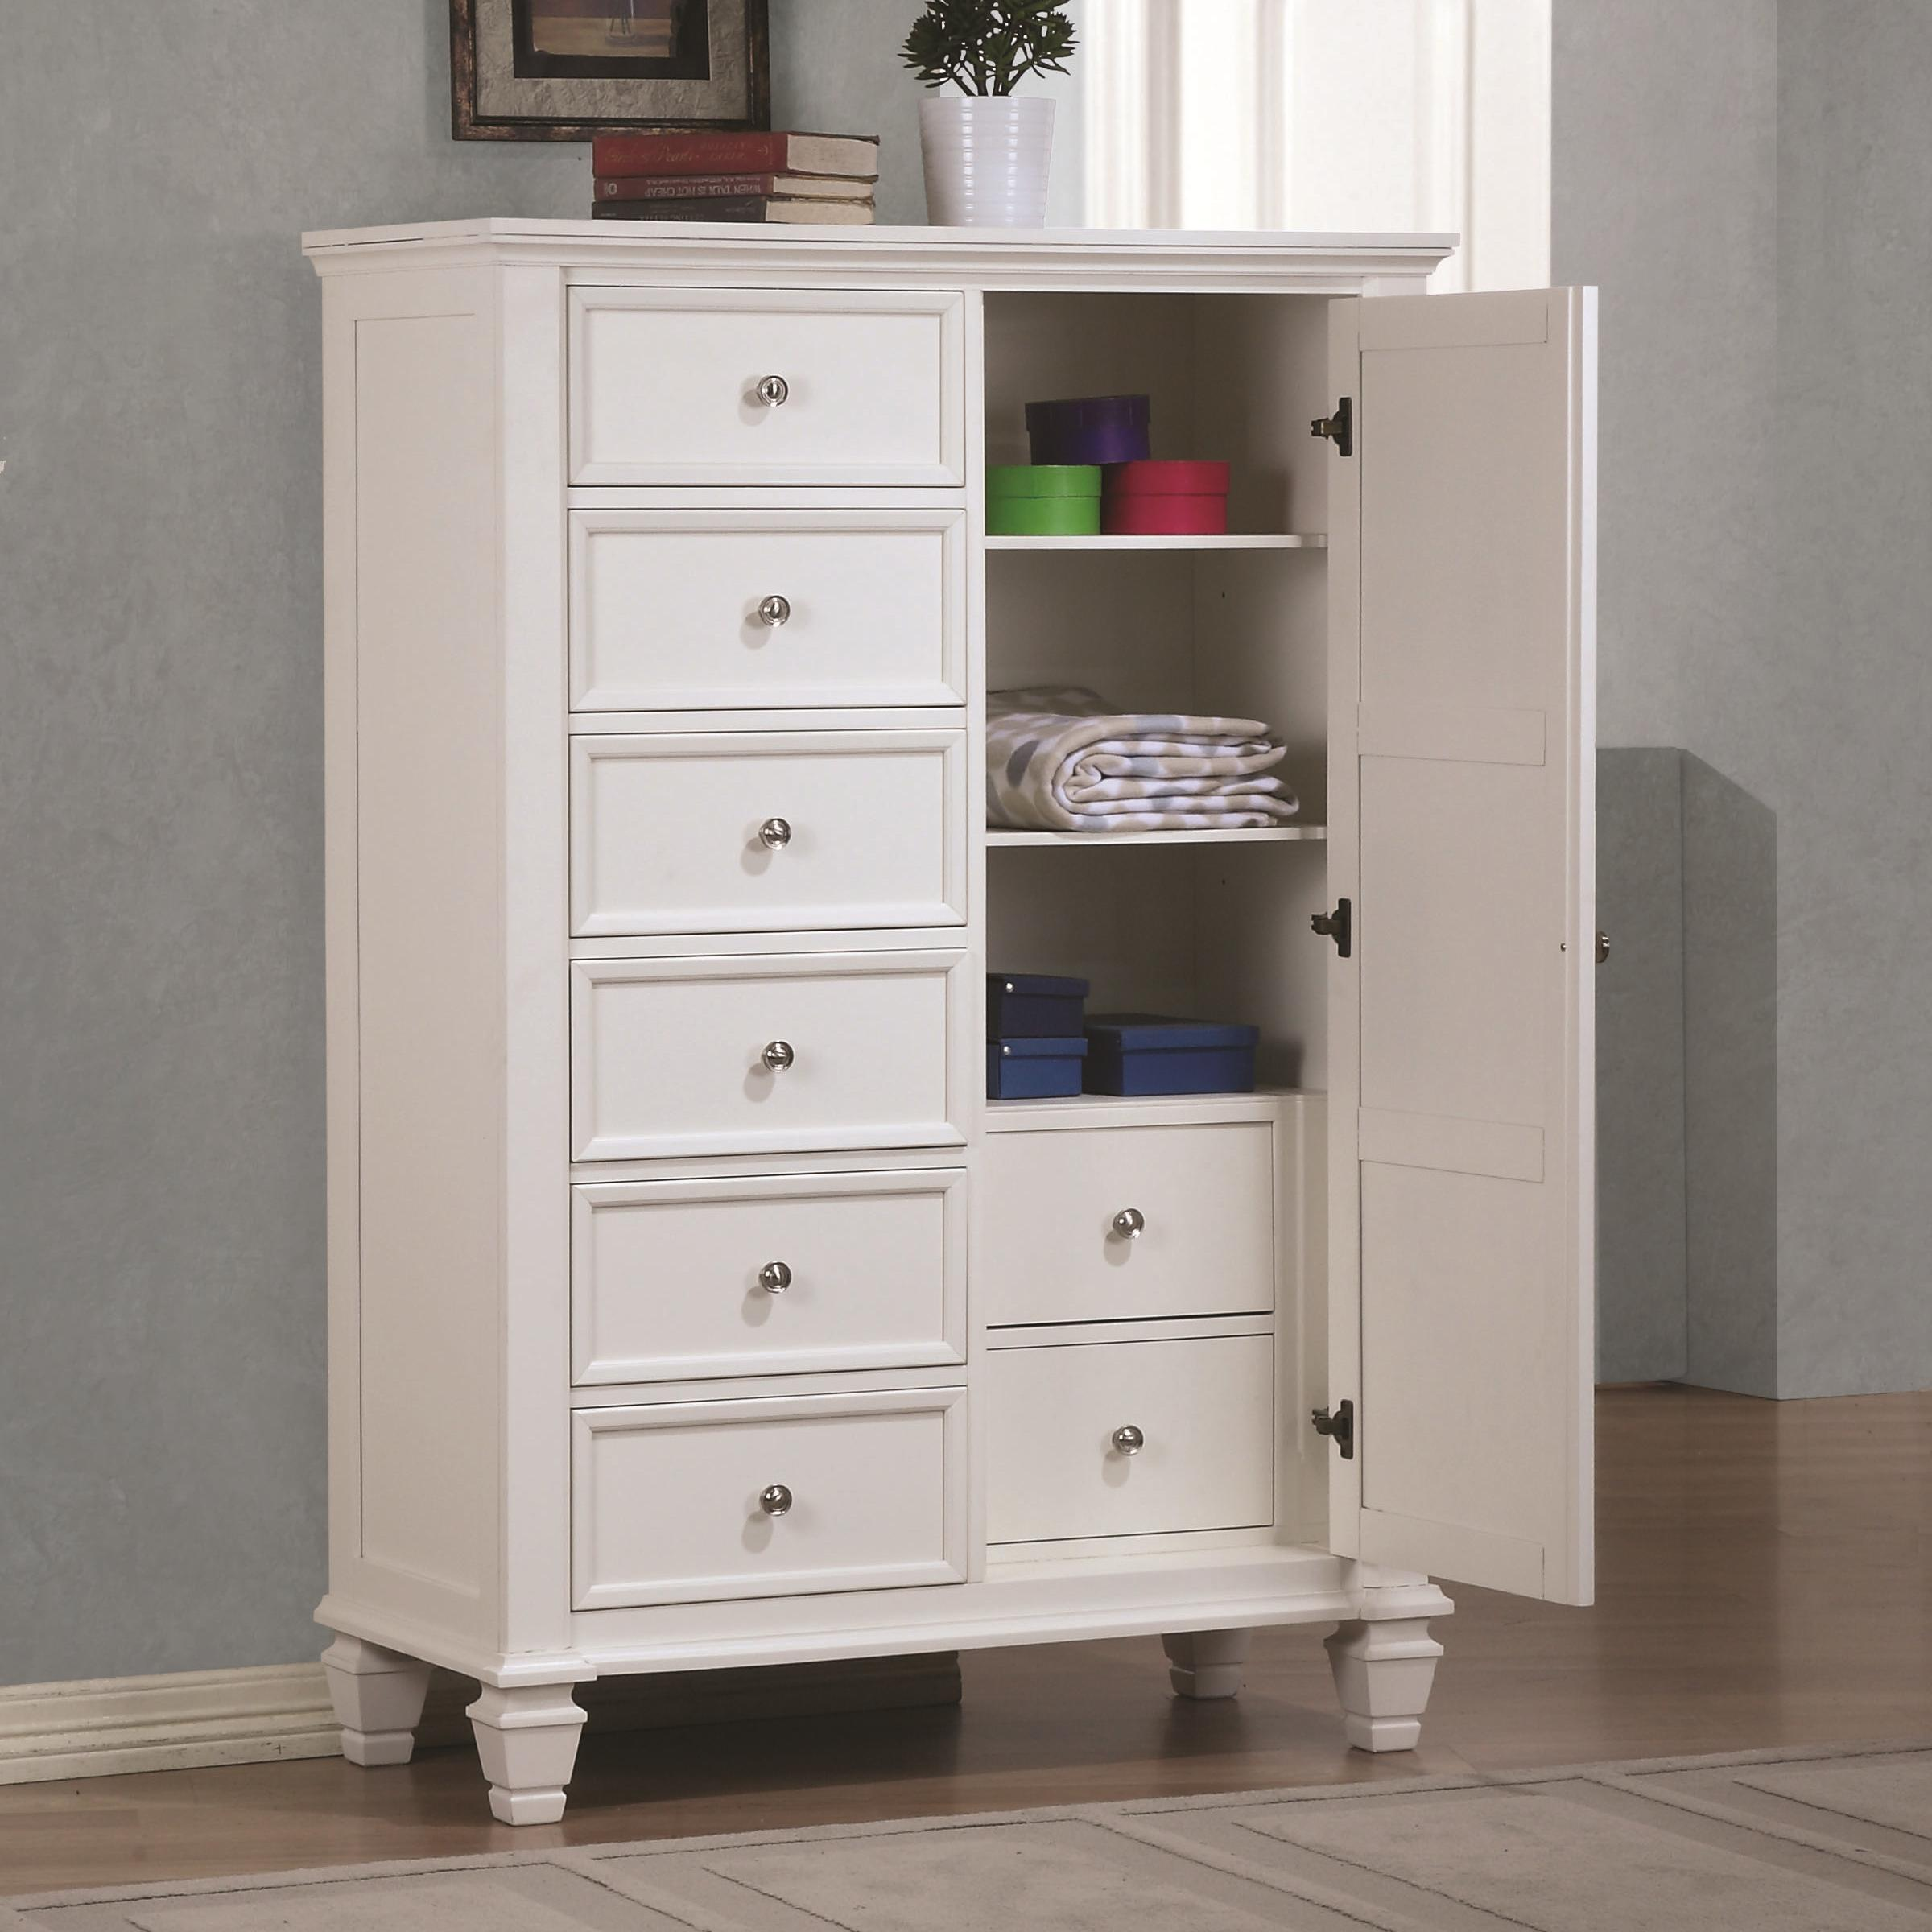 Sandy Beach Door Dresser by Coaster at A1 Furniture & Mattress